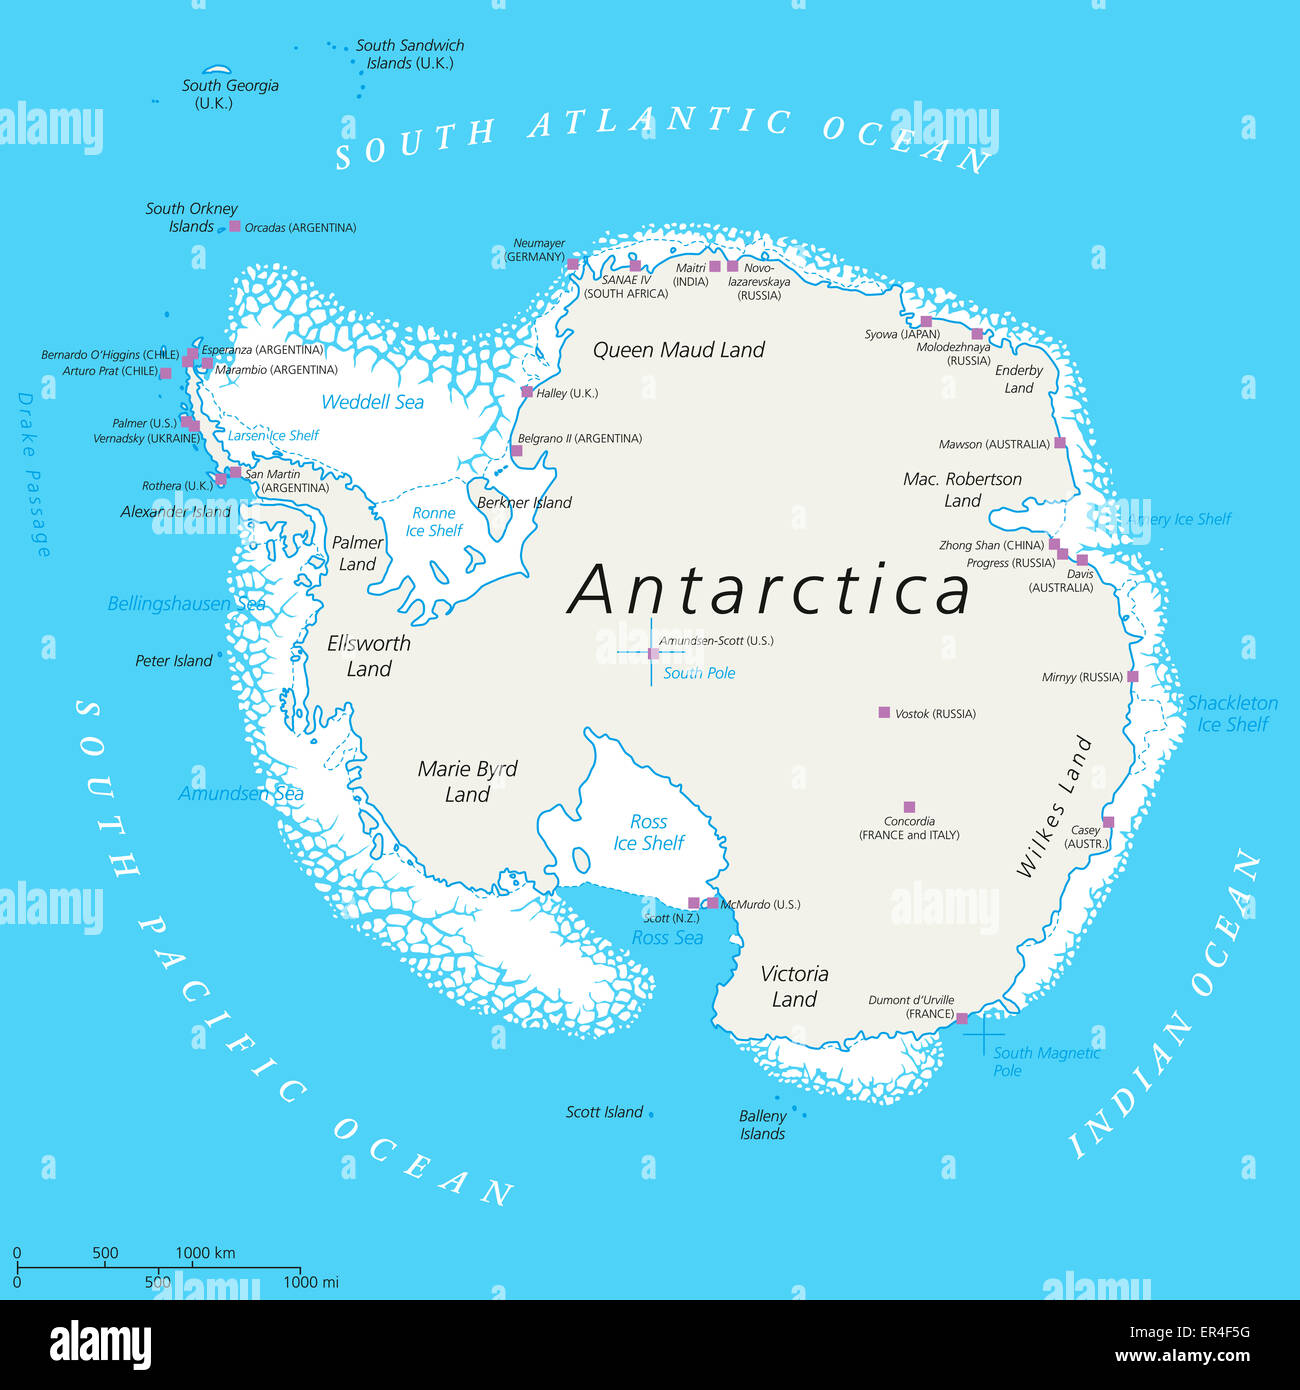 Antarctica political map with south pole scientific research antarctica political map with south pole scientific research stations and ice shelfs english labeling and scaling sciox Images